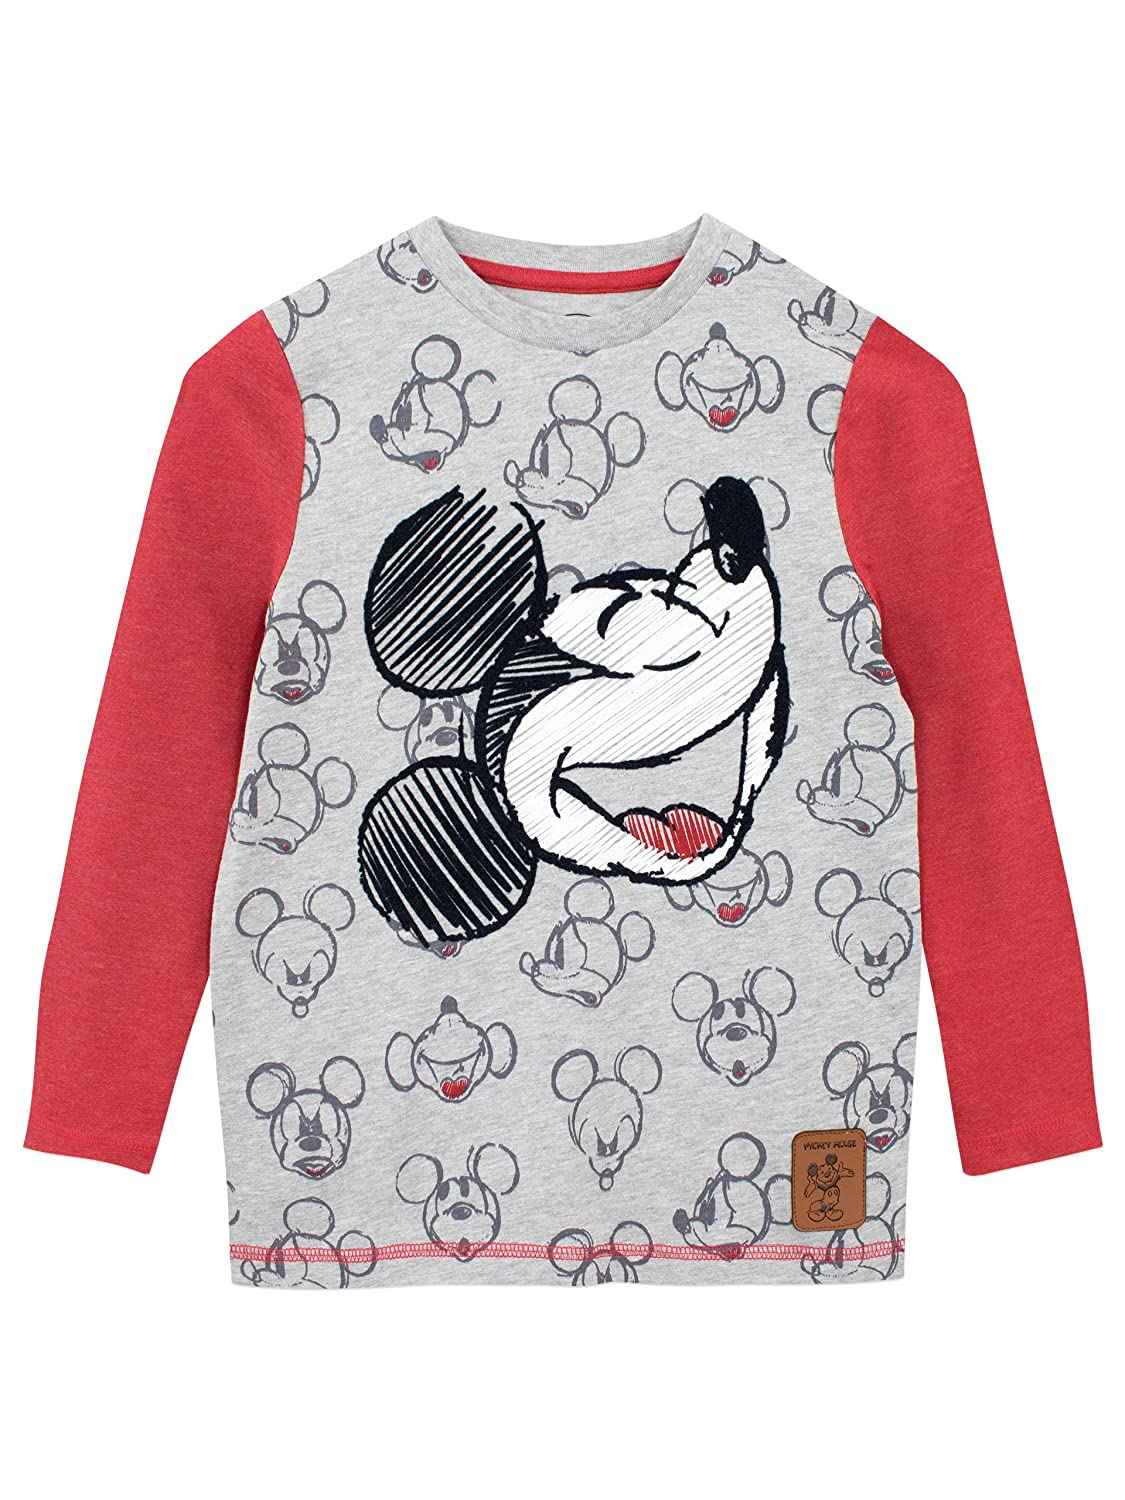 Disney Boys' Mickey Mouse Long Sleeved Top